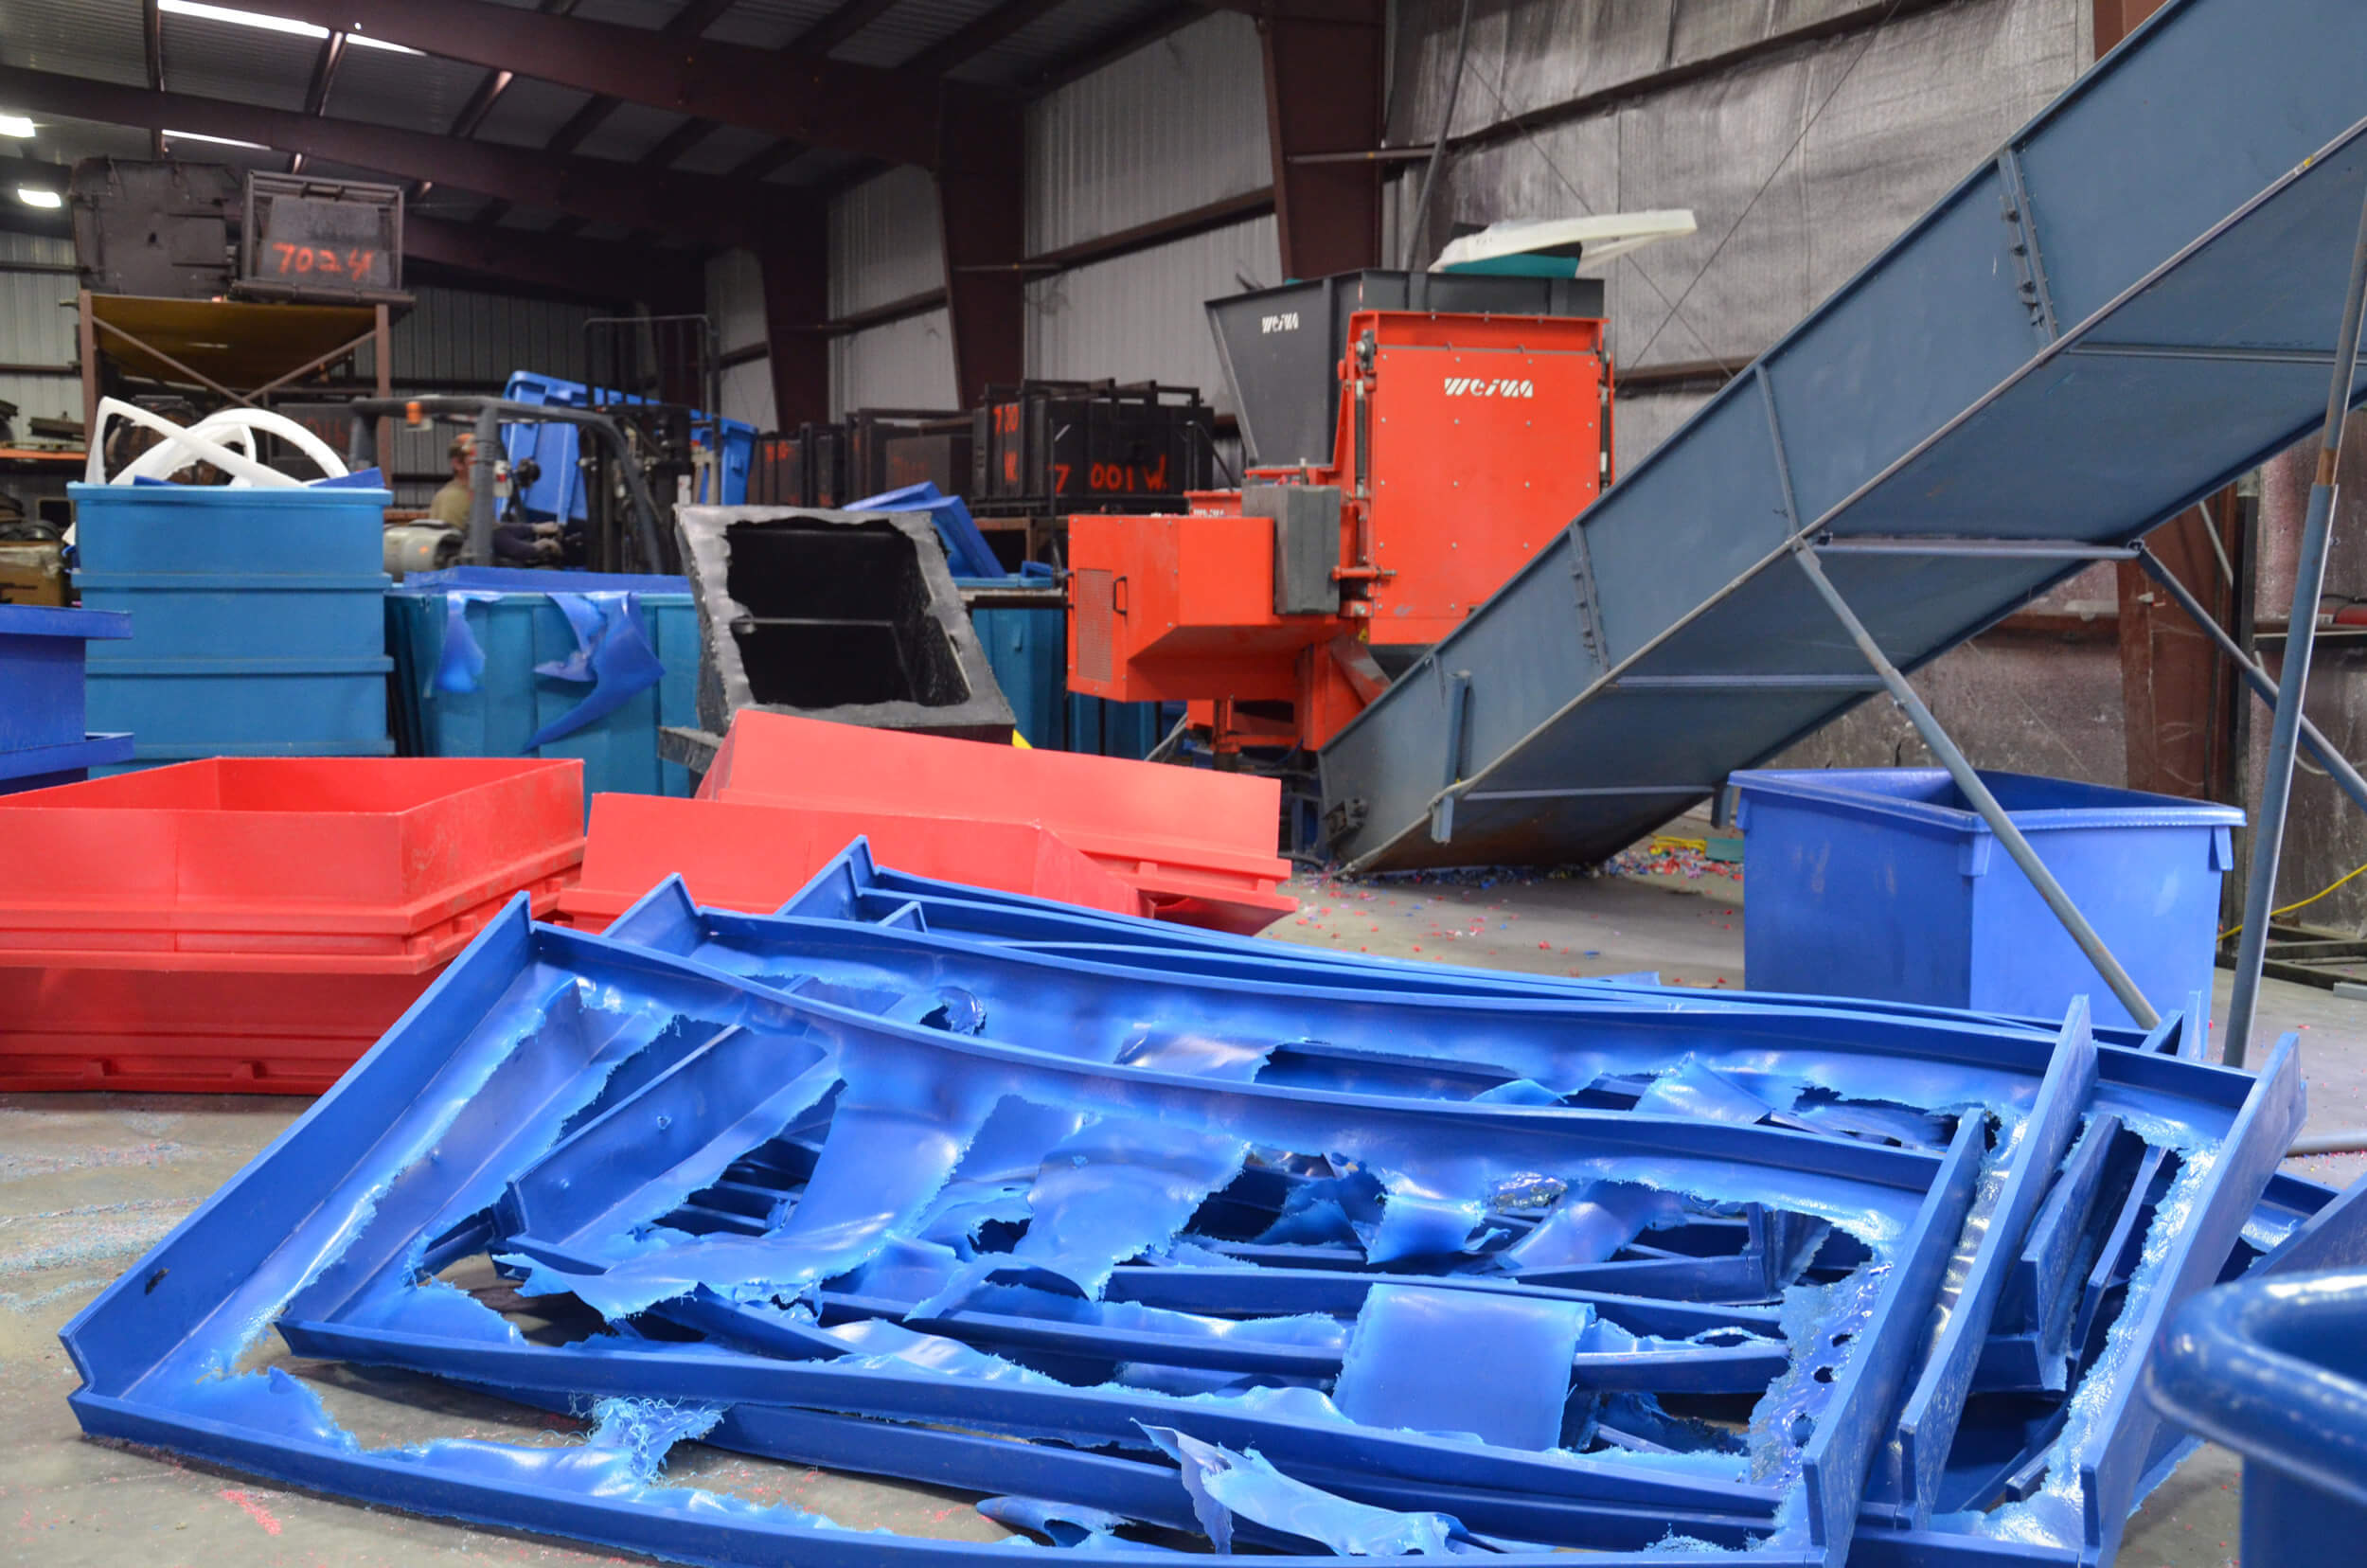 WEIMA WLK 6 S single shaft shredder shreds plastic scrap from production